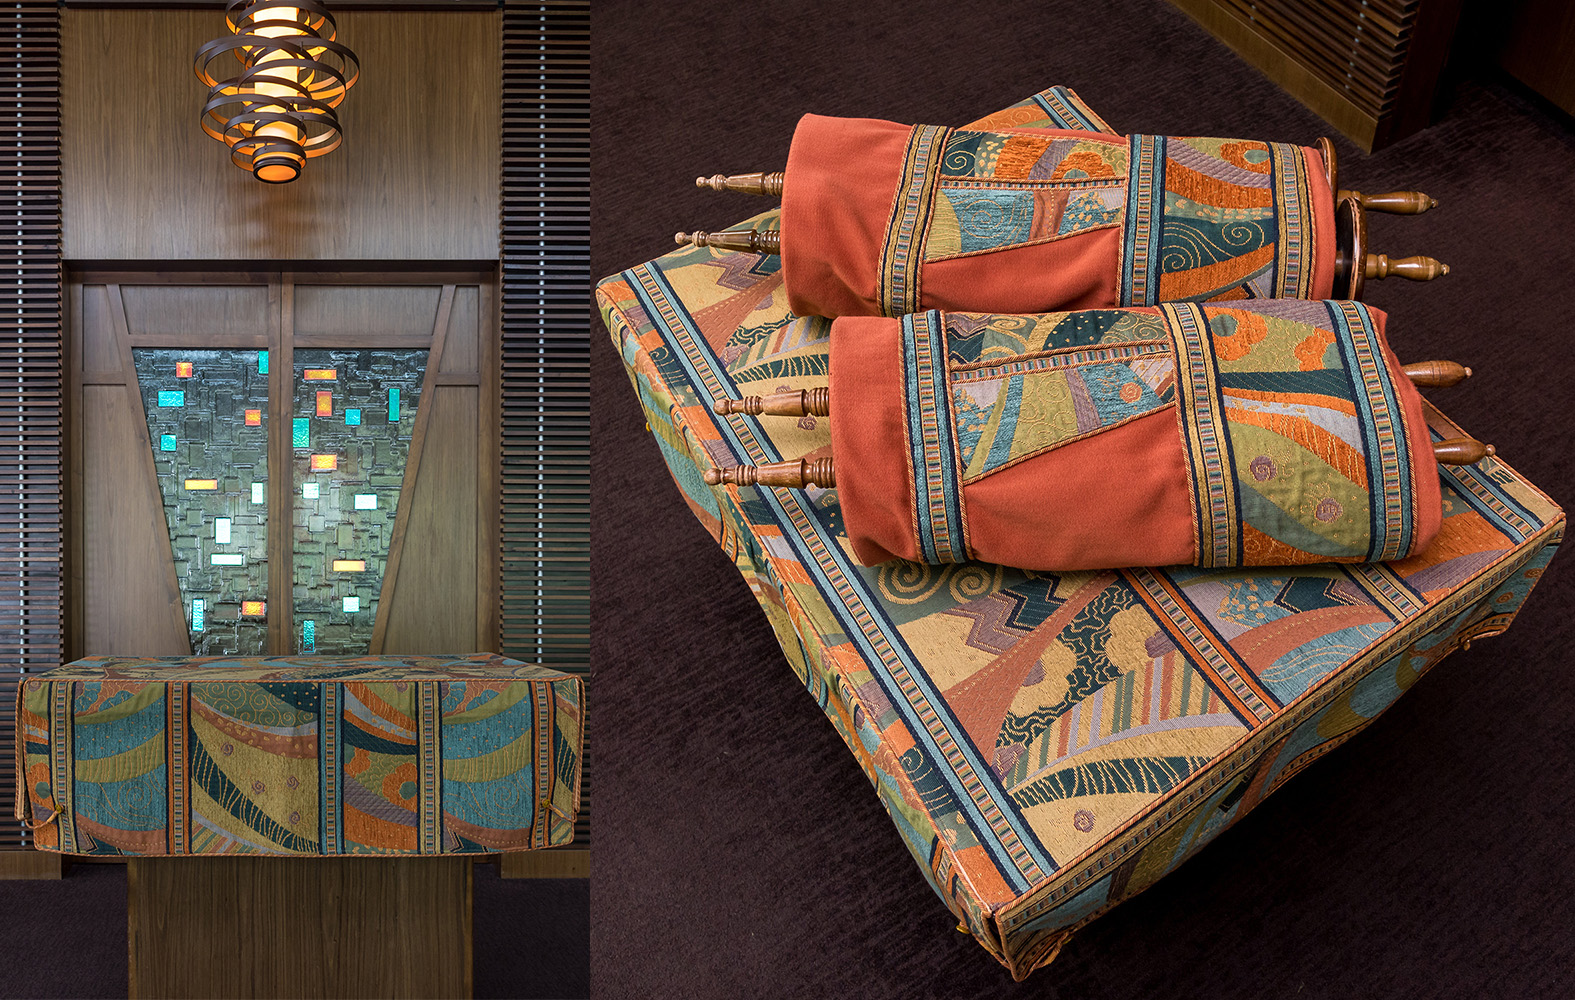 Finished lectern cover shown in front of the ark; finished Torah mantles on the lectern. Photos by Joy Yagid.